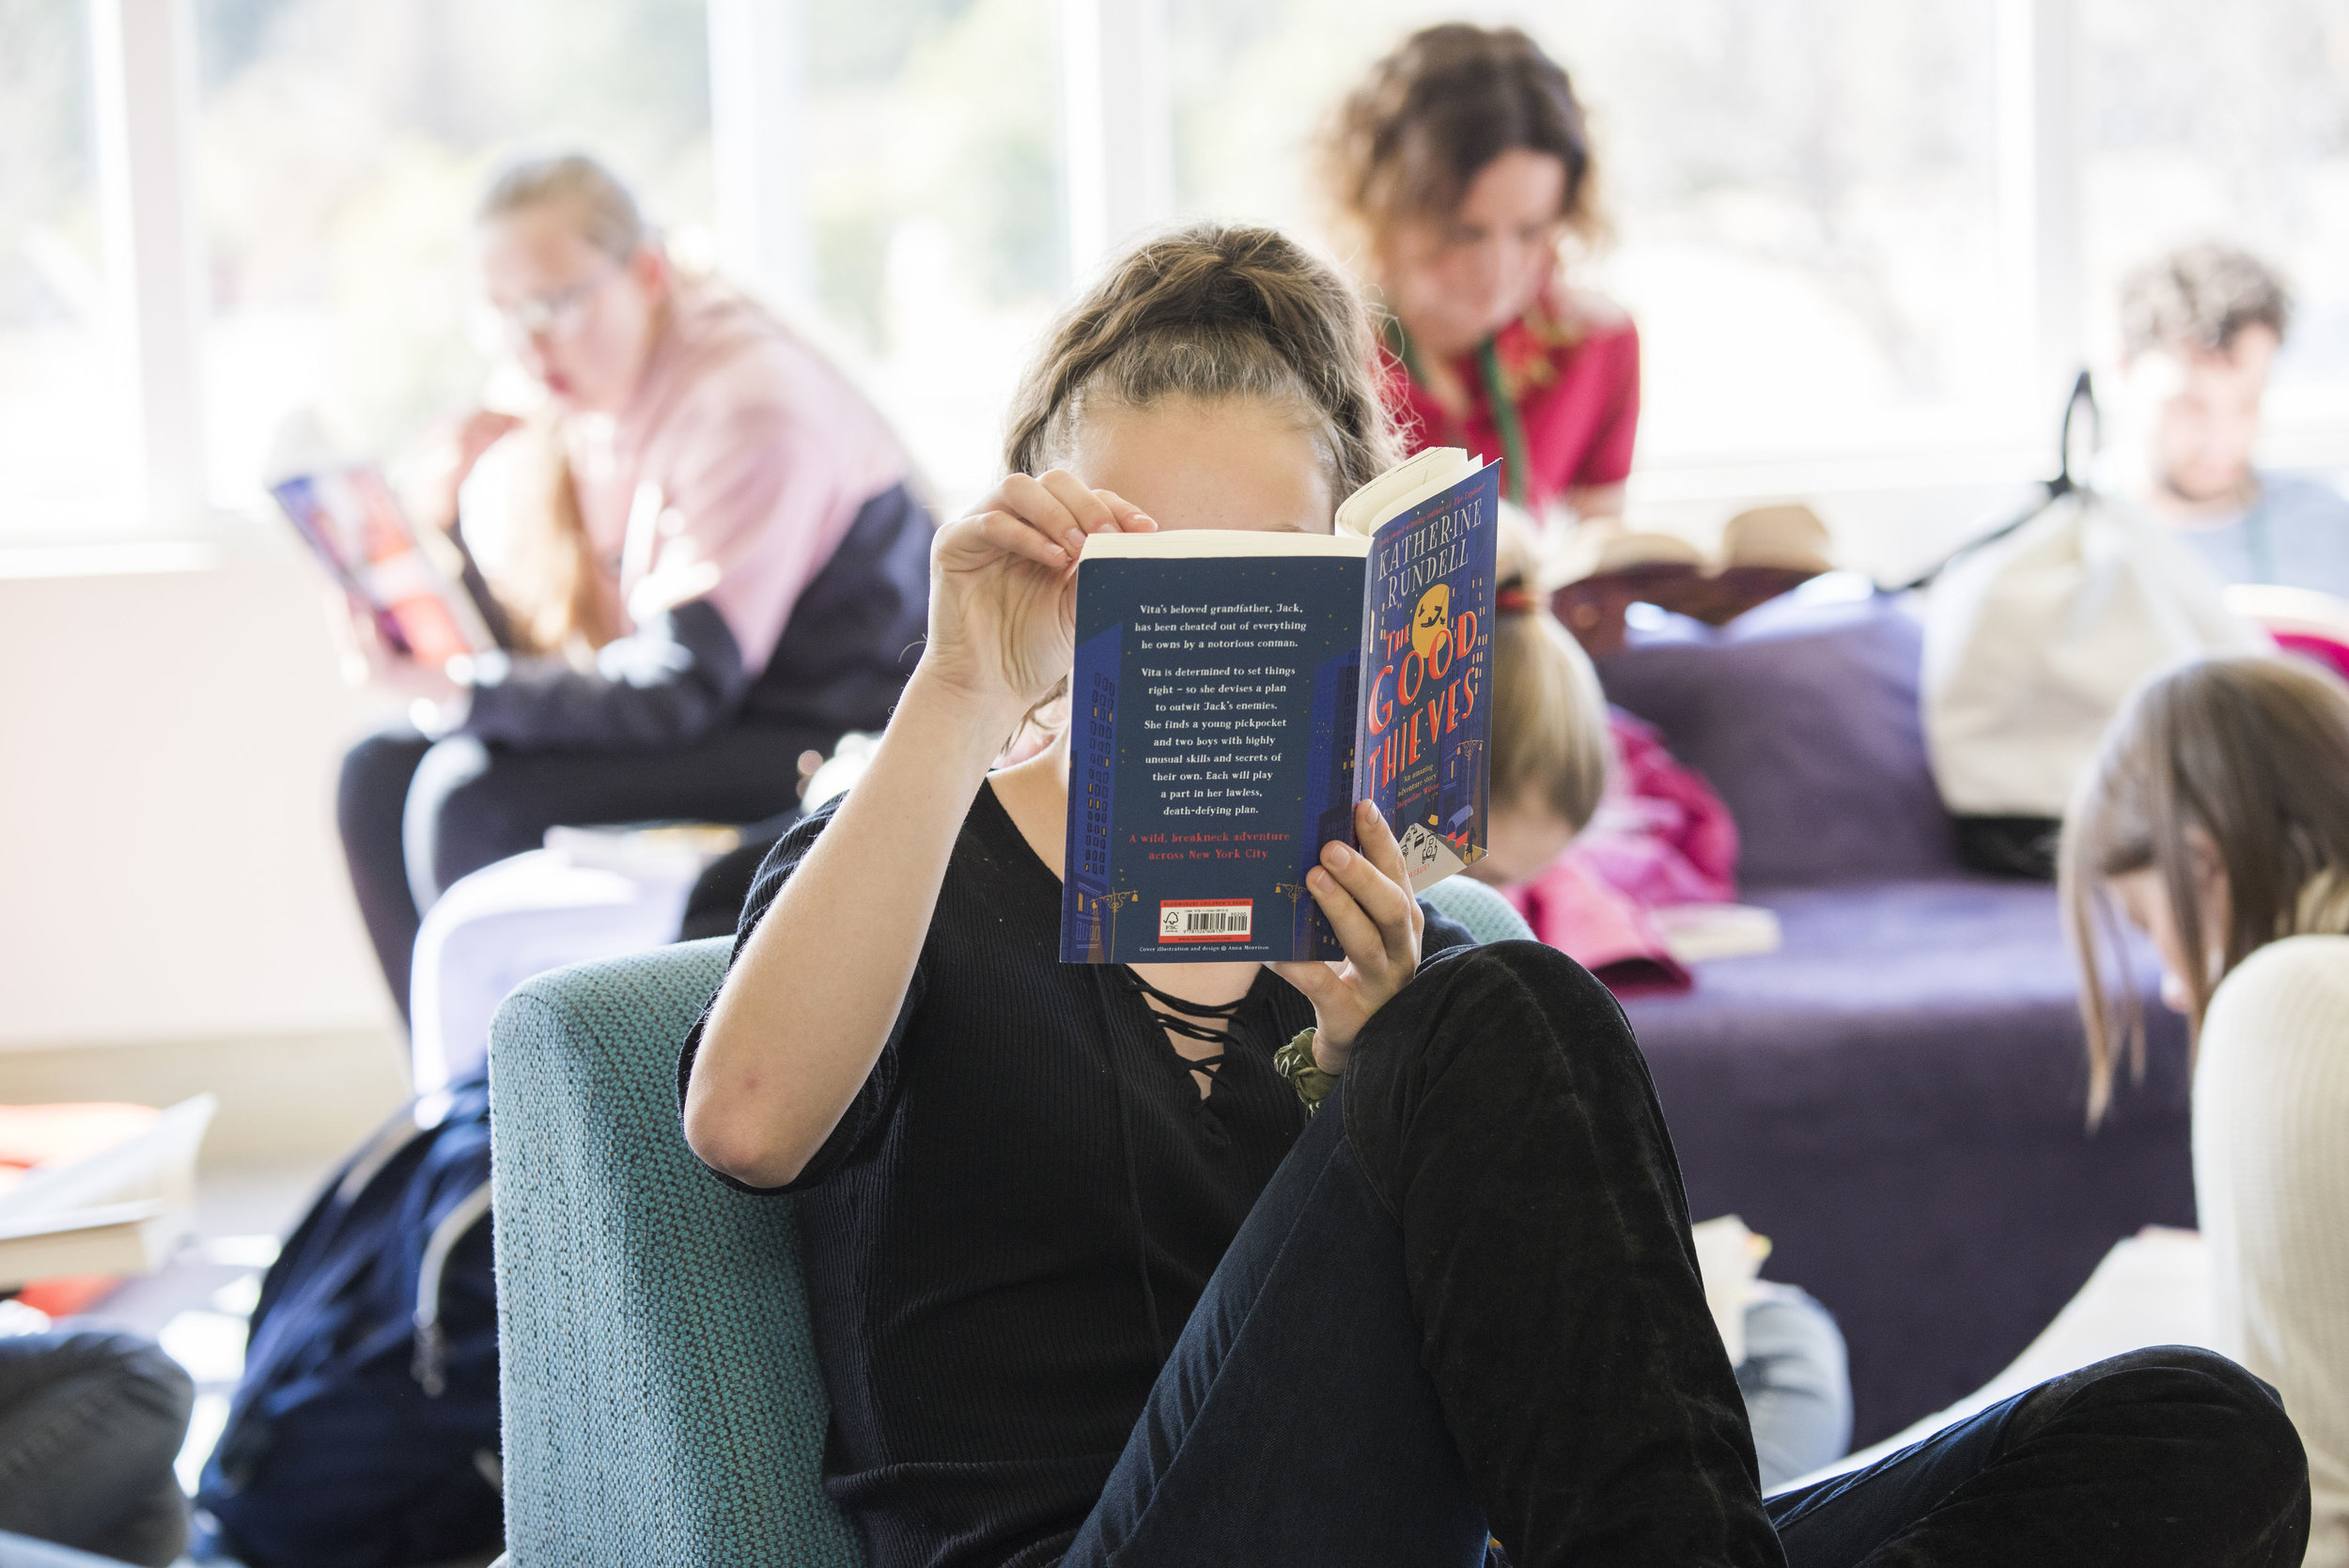 YA Silent Reading Party at the Mudgee Library